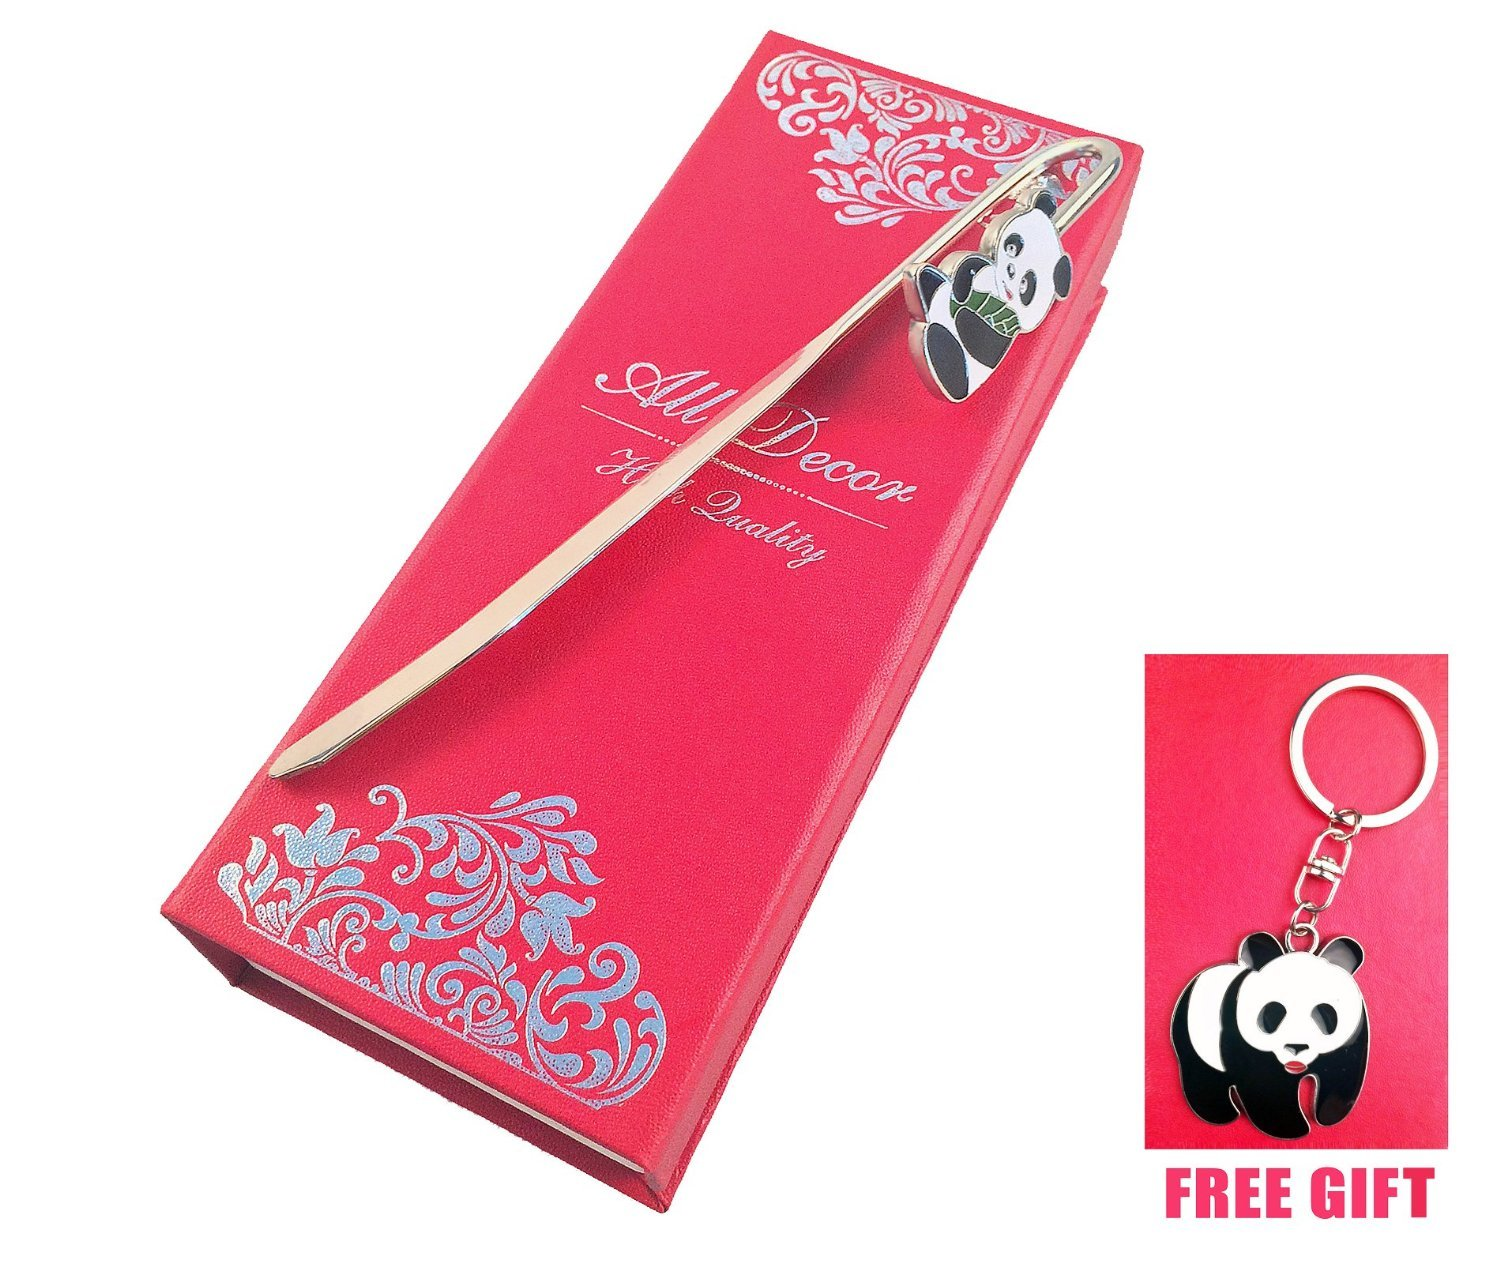 Hook Bookmark Letter Opener Key Ring Key Chain Fob Ring Stainless Steel Black and White Panda, Beautiful Gift Box